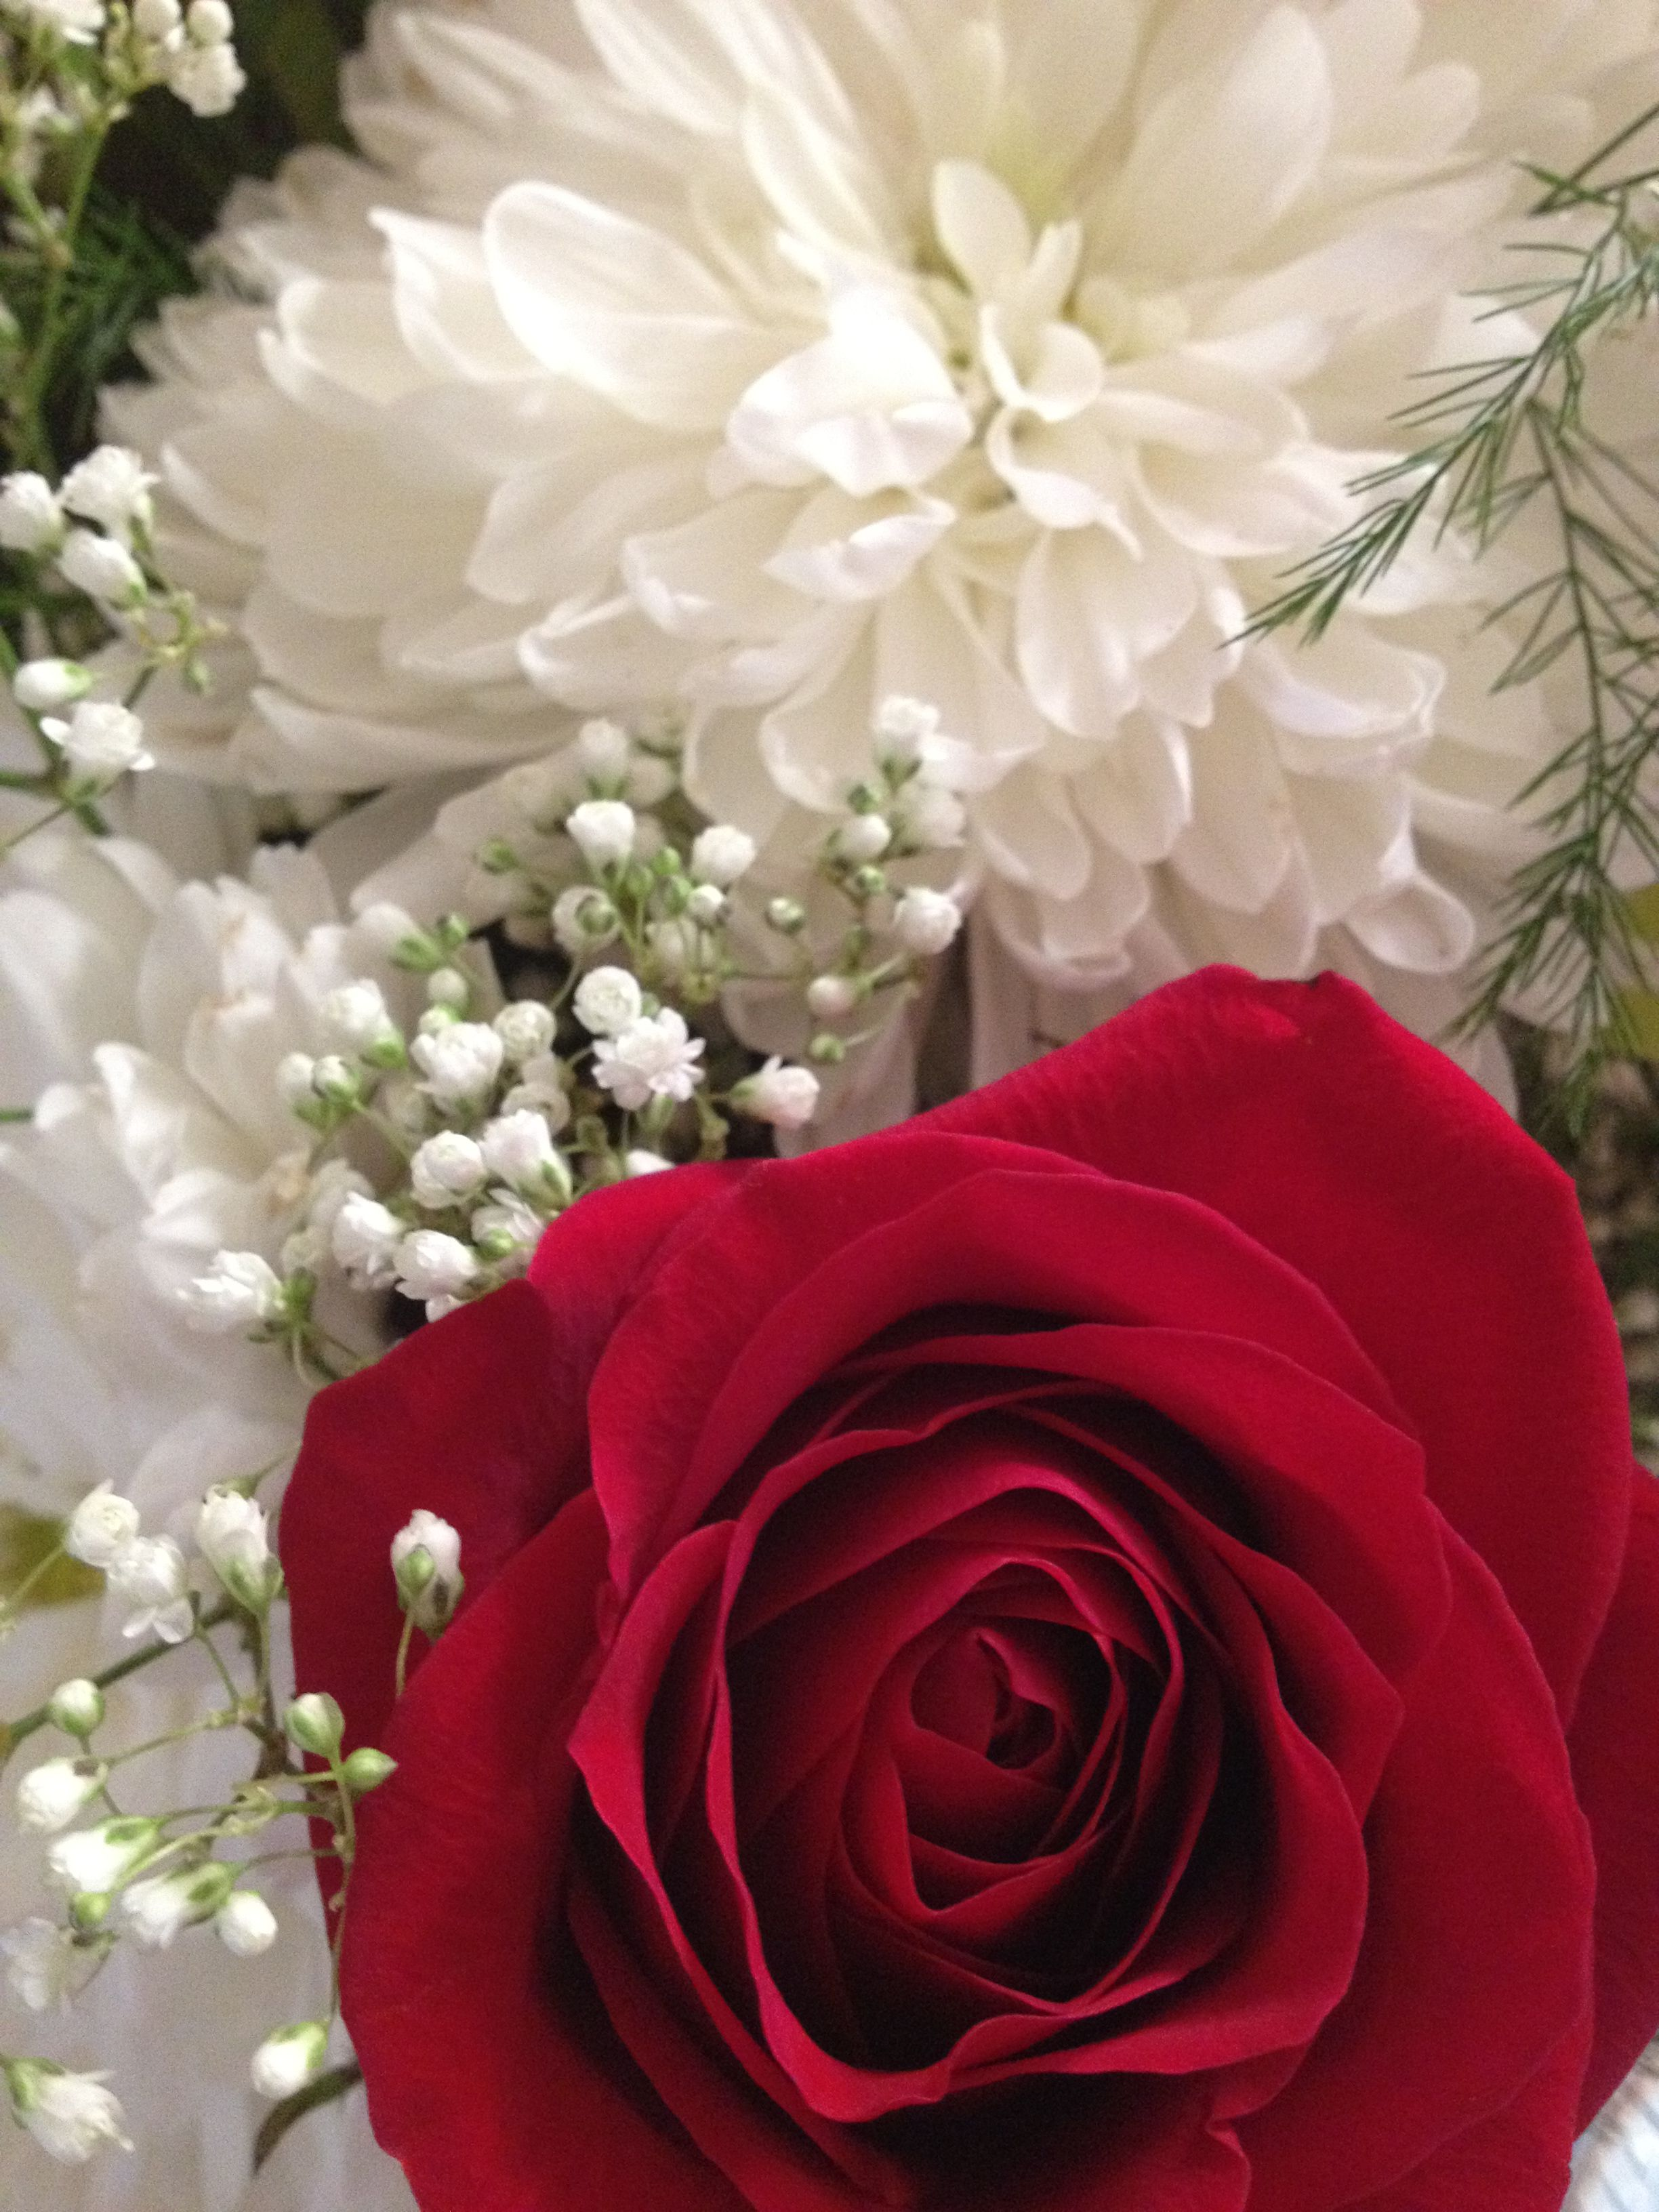 Wedding Anniversary Flowers Red Roses White Mums Babys Breath